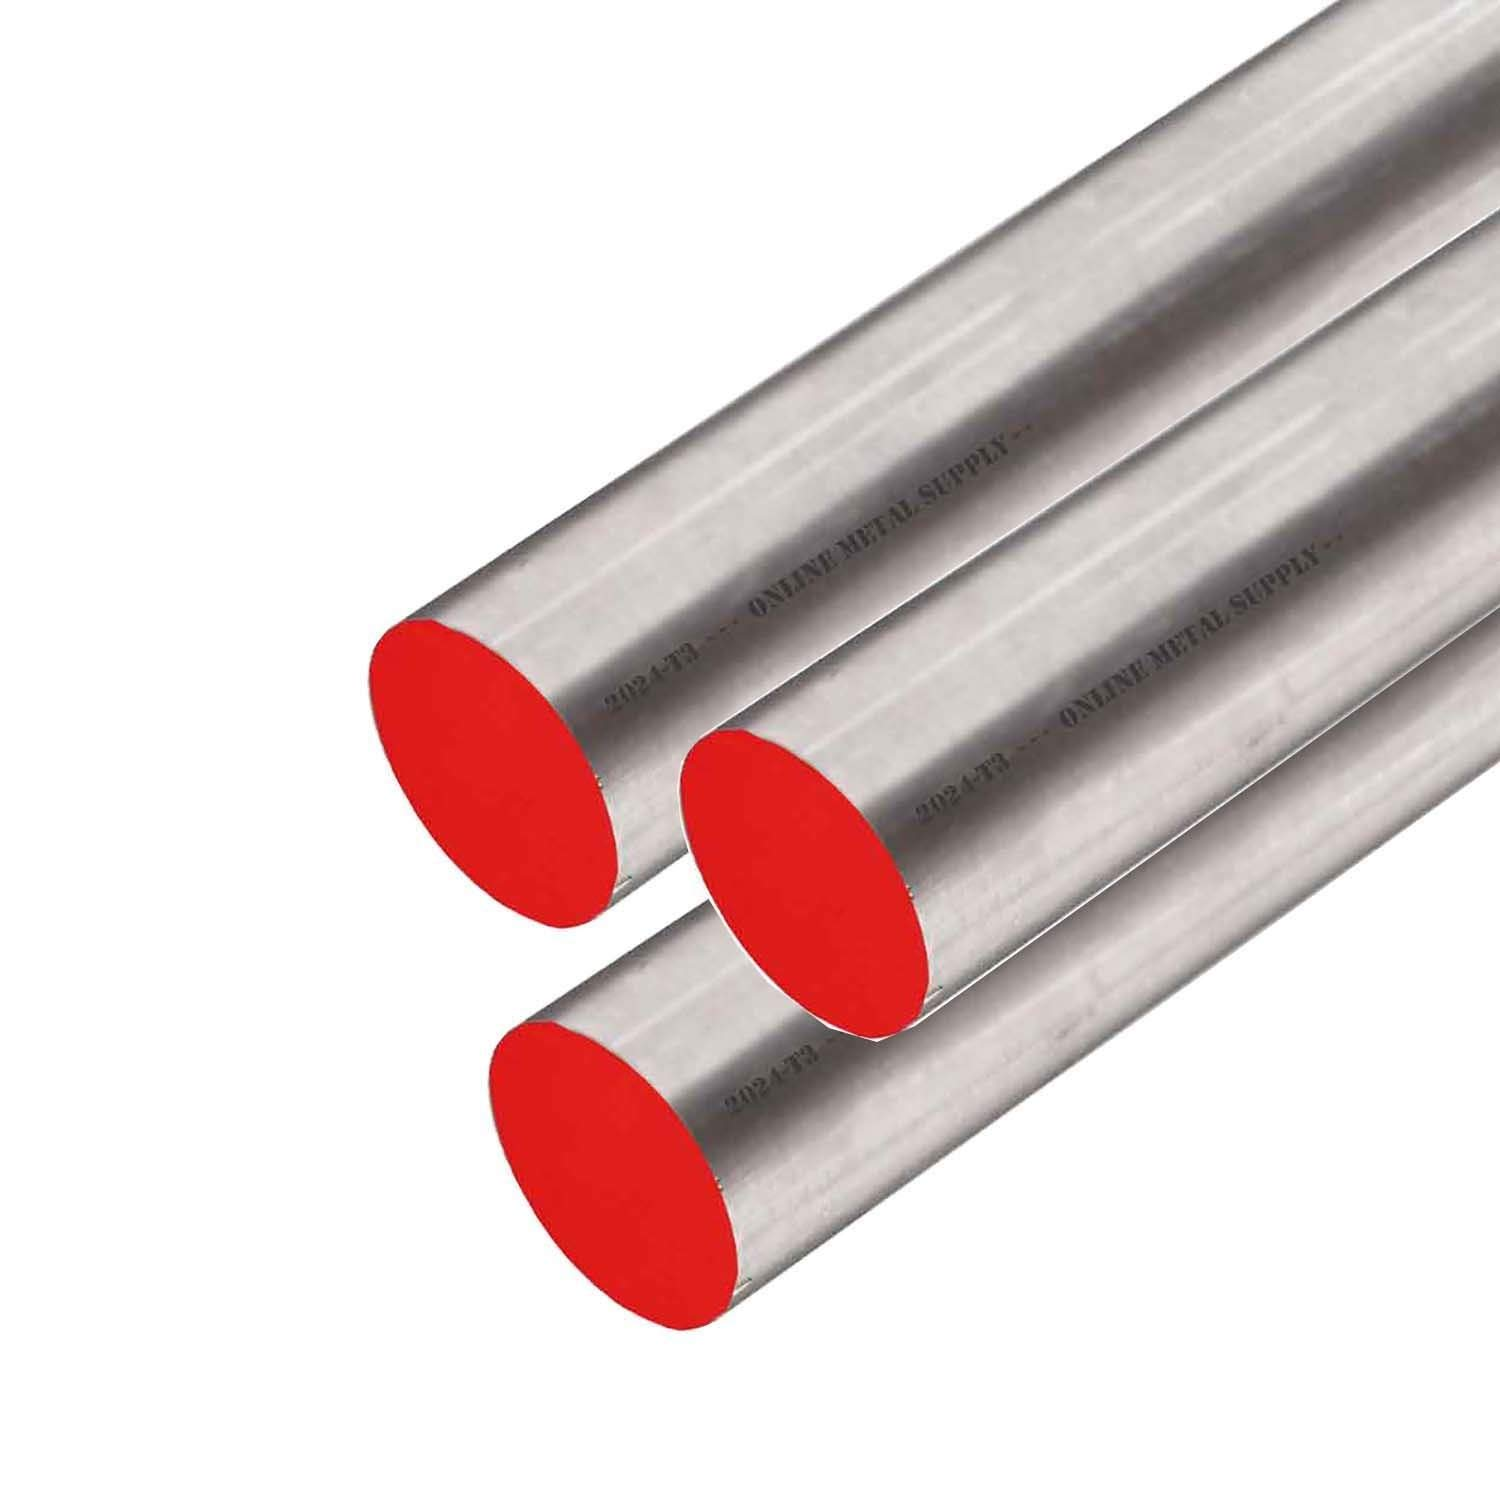 Online Metal Supply W-1 Tool Steel Drill Rod 0.1750 x 36 inches 3 Pack #16